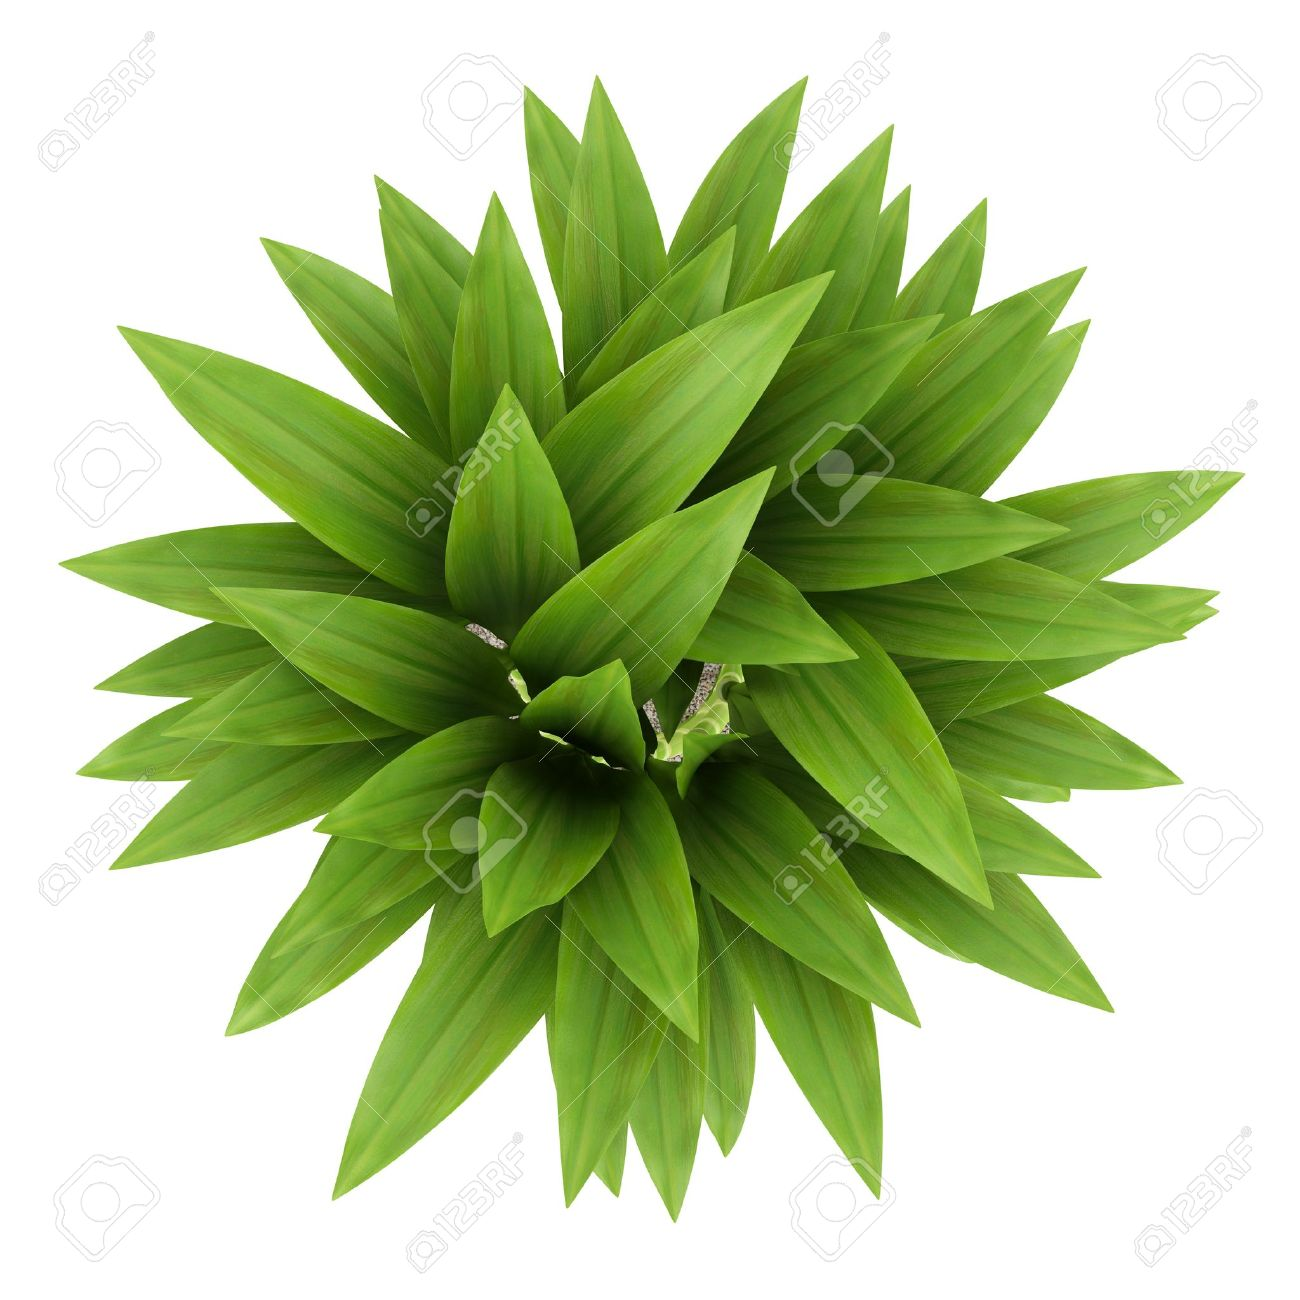 Plant top view vector in group download free vector art stock - Plant Top View Top View Of Bamboo Plant In Pot Isolated On White Background Stock